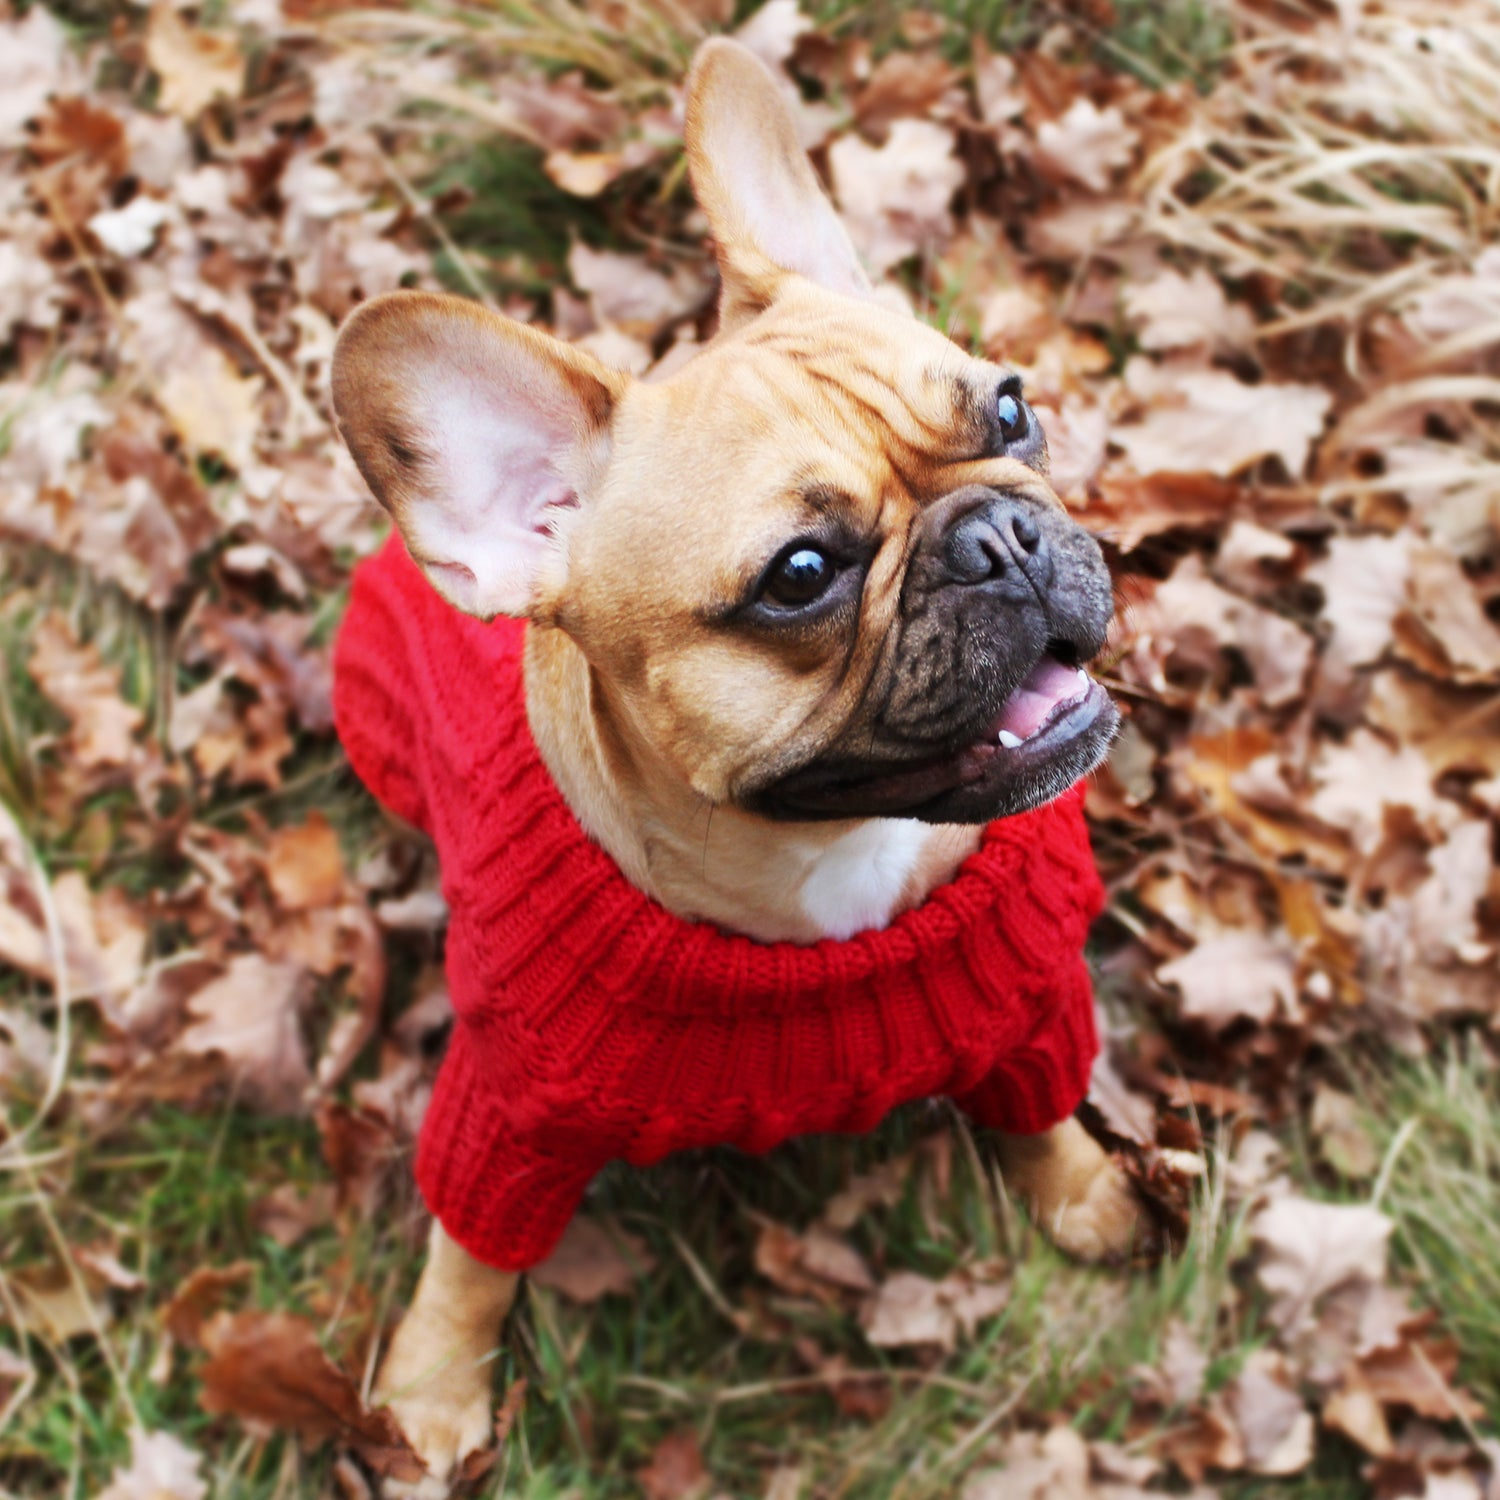 Red knitted jumper for dogs